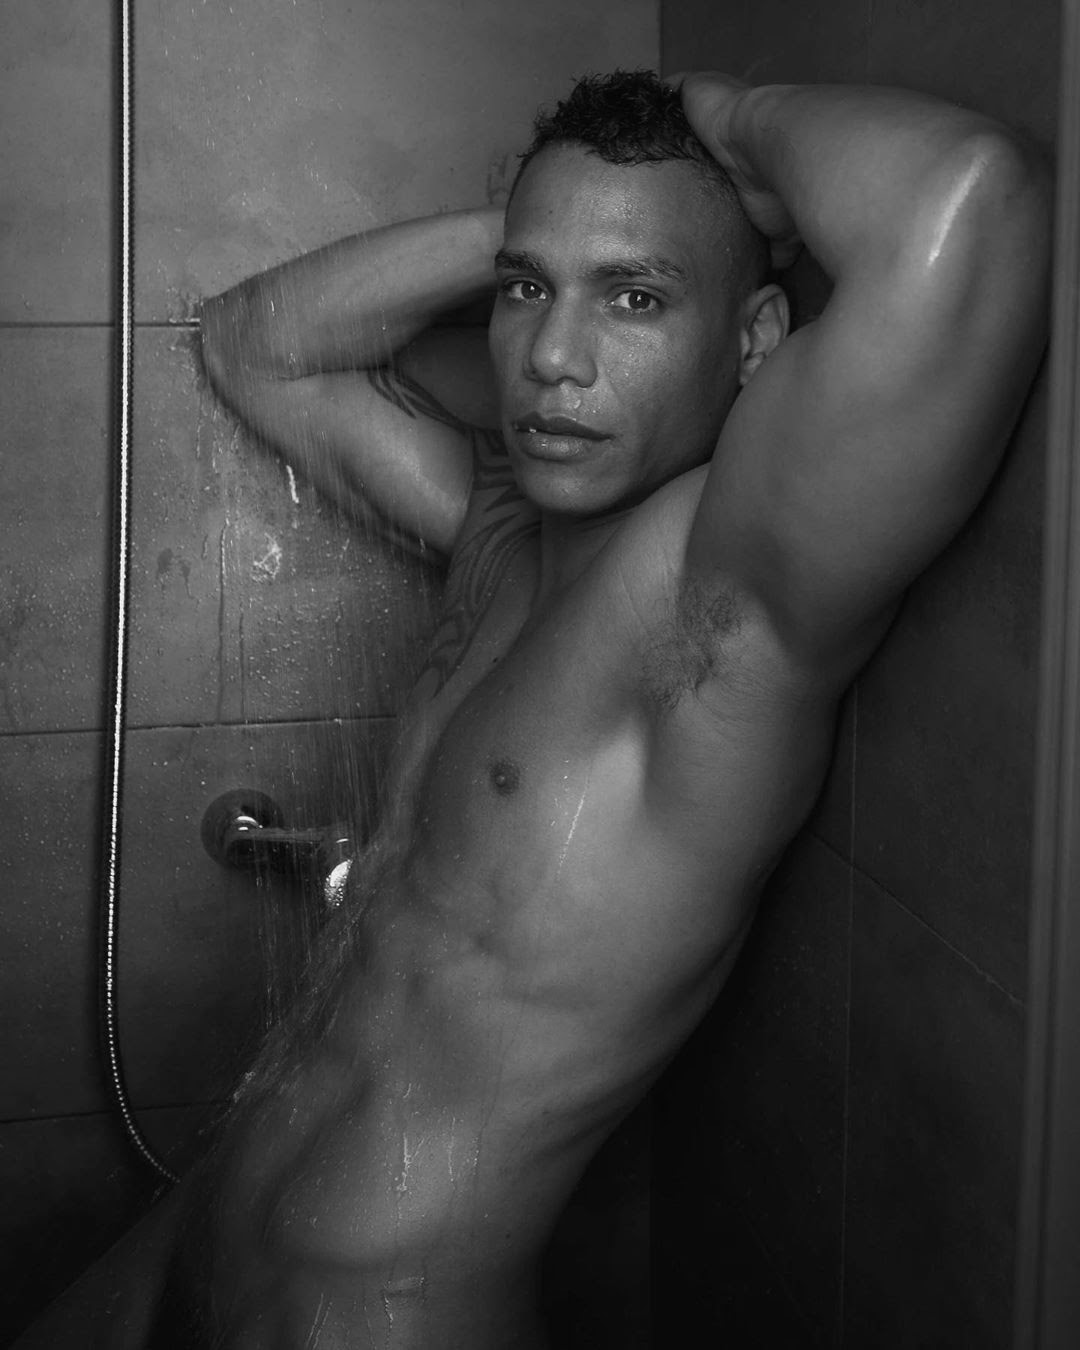 ShoweR TimE, by Men in the city ft Javier Armando (NSFW).